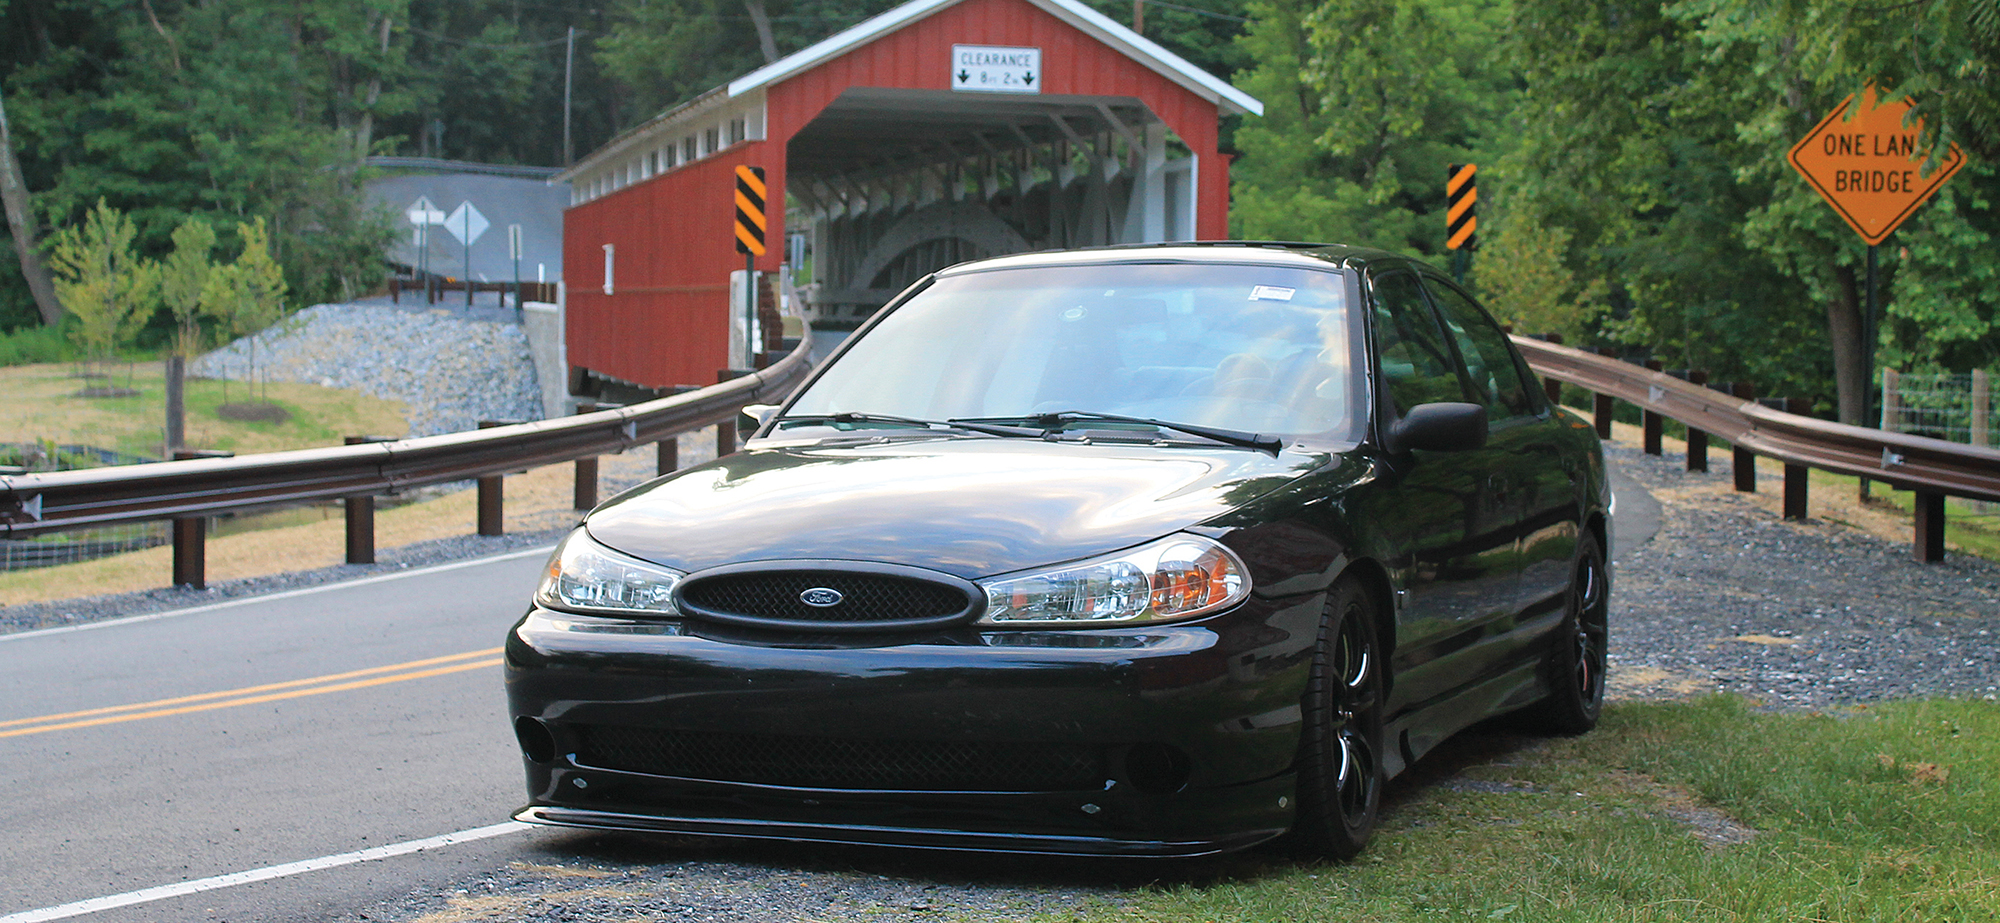 hight resolution of 1998 ford contour svt wiring harness wiring diagramshot builds 1998 ford svt contour articles grassroots motorsports